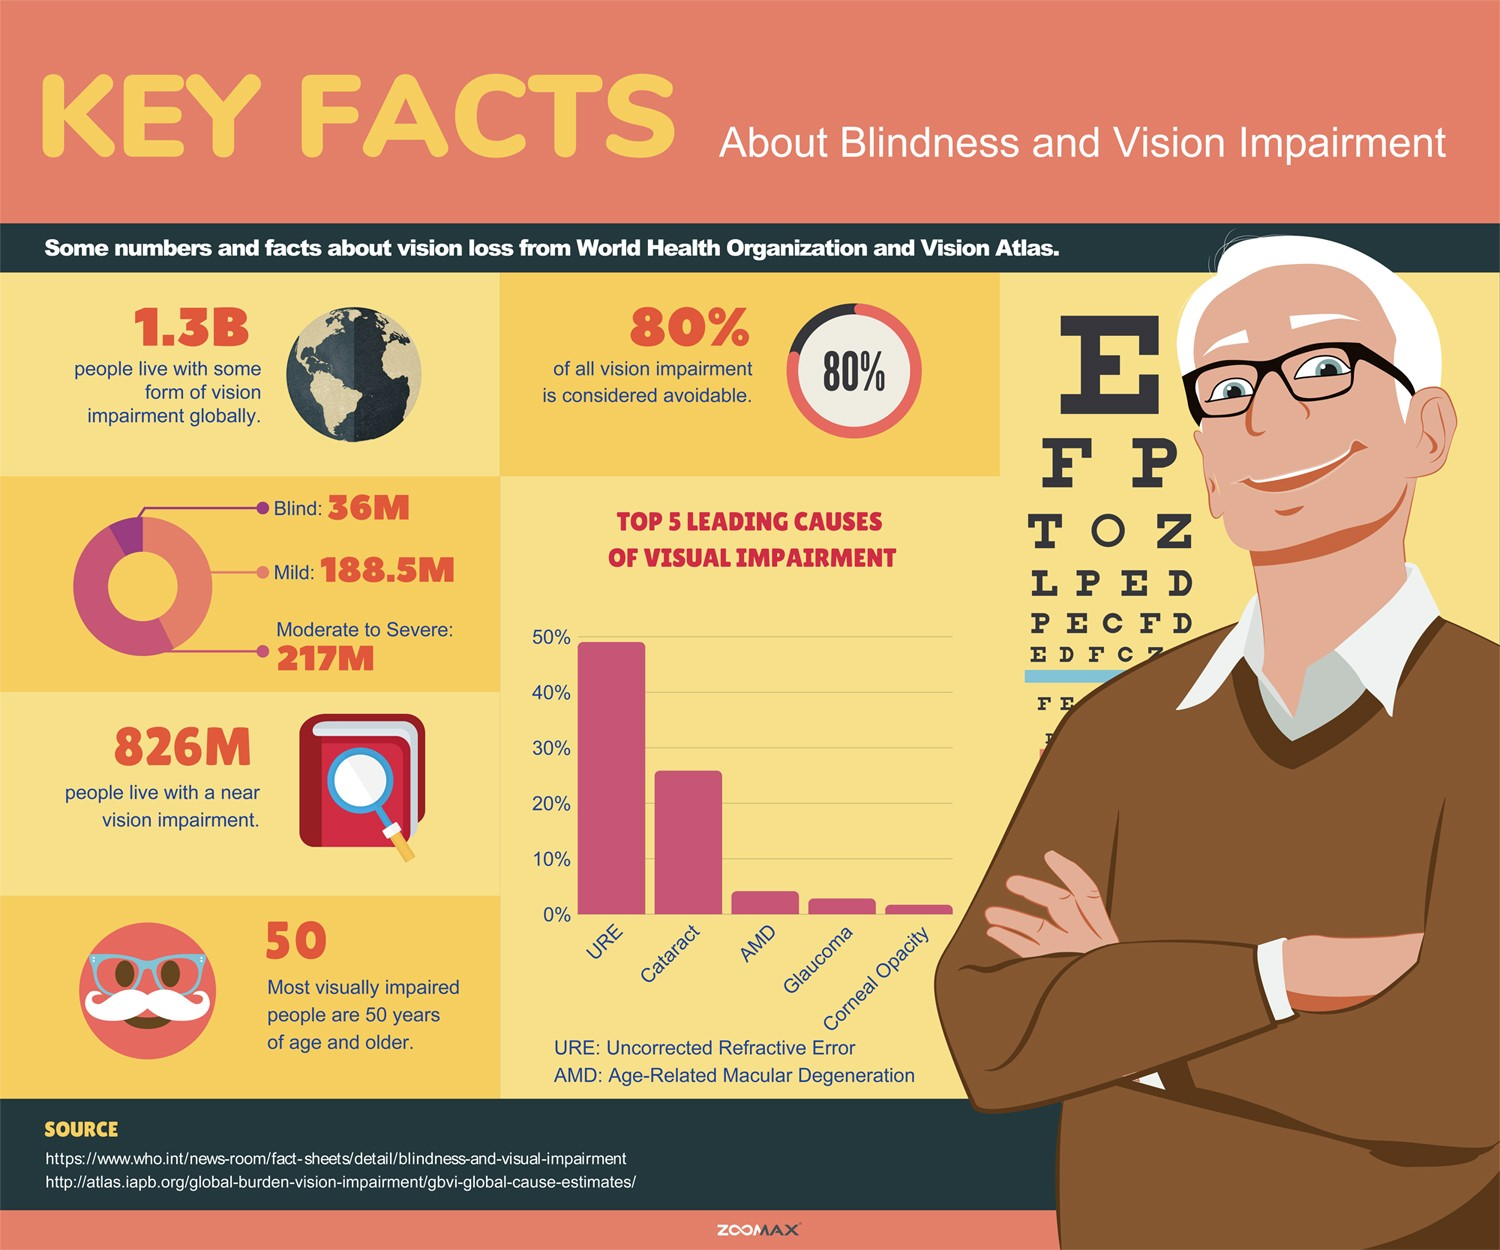 Key Facts About Blindness and Vision Impairment